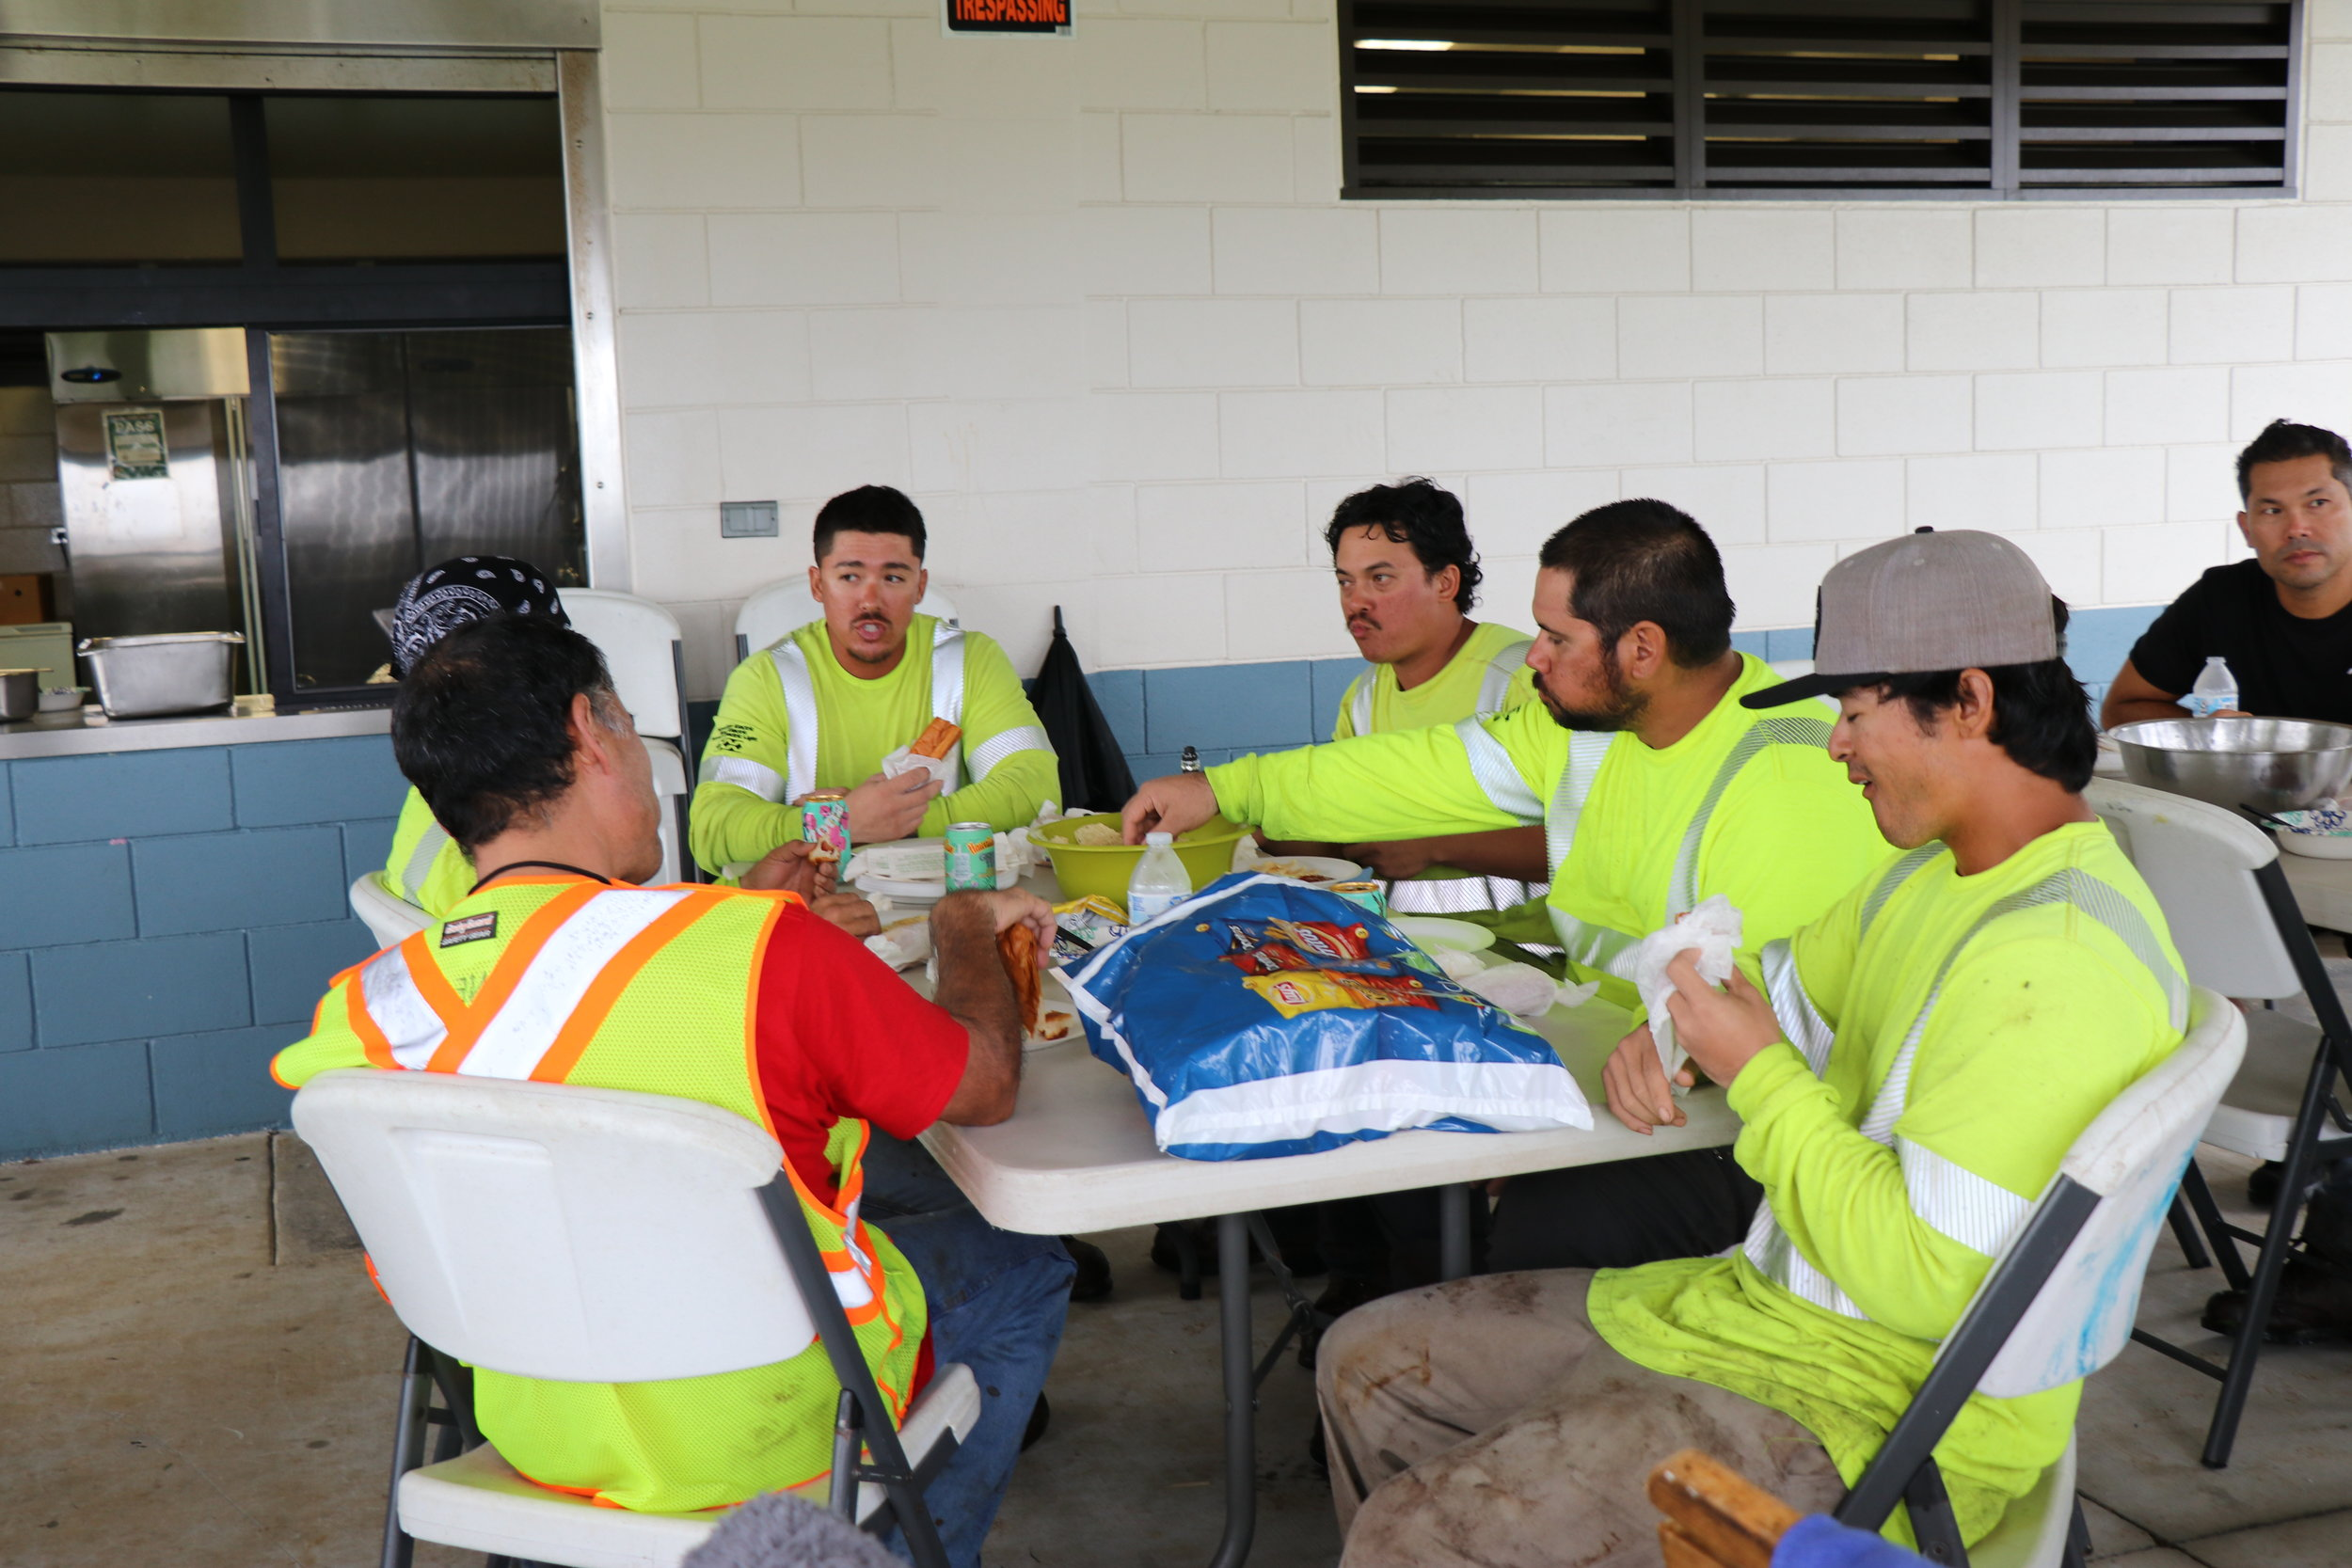 IMG_0766 hungry workers2.JPG